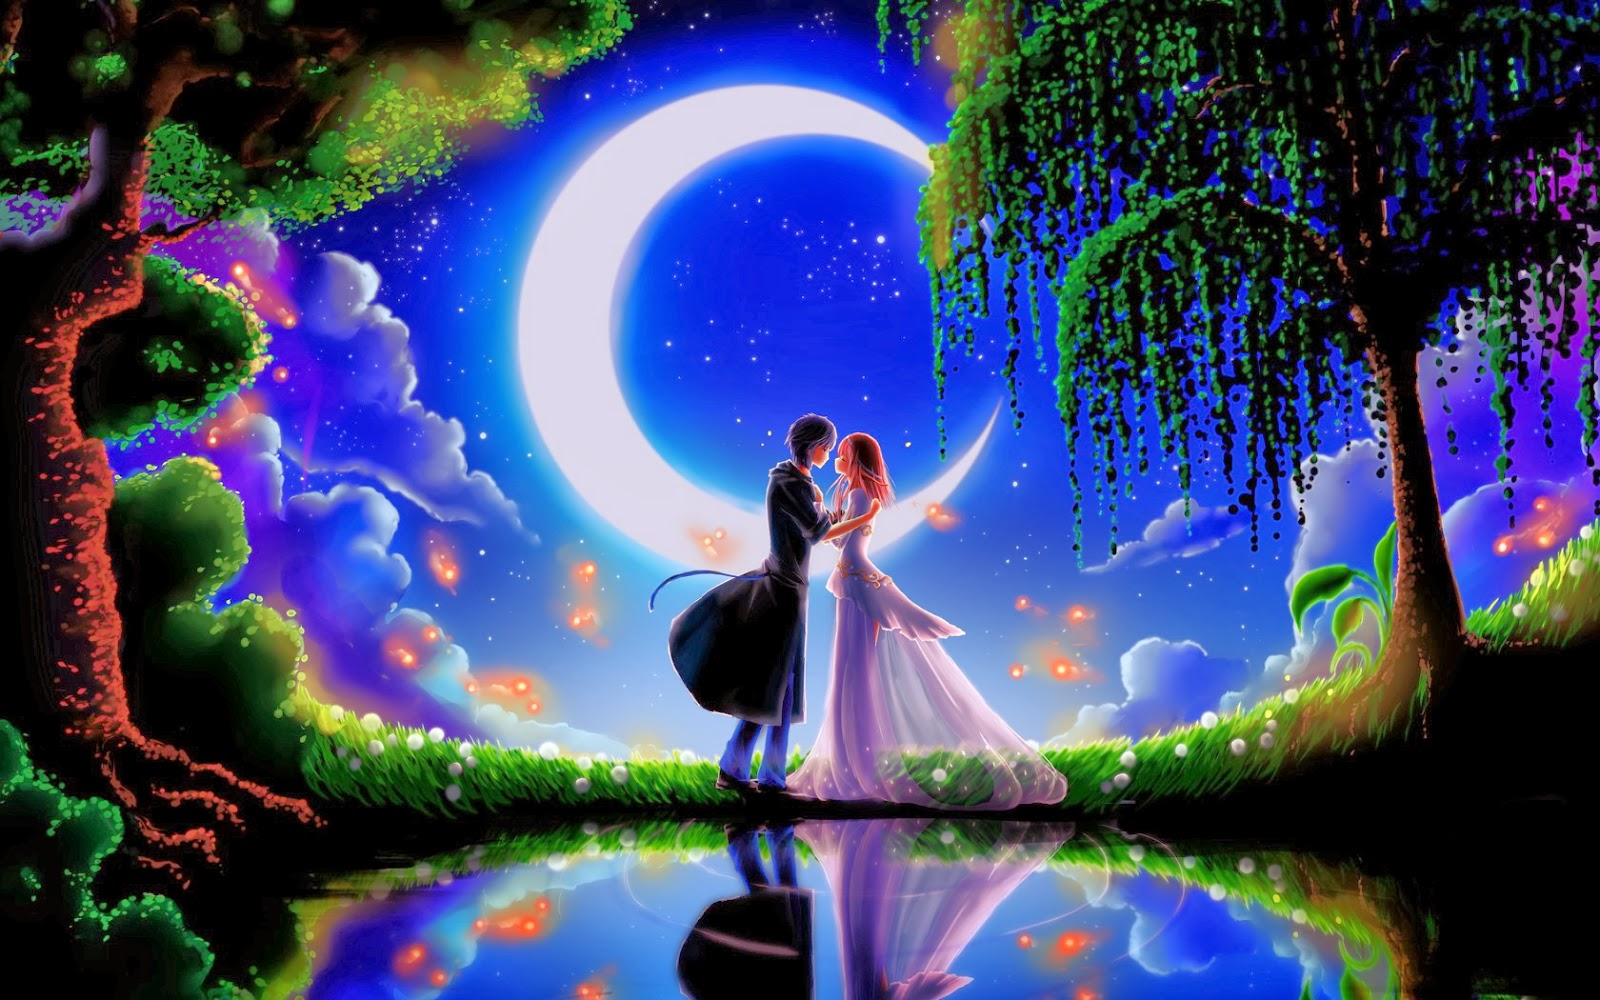 Lovers-couple-Romance-dance-at-night-moon-picture-HD-Photo.jpg